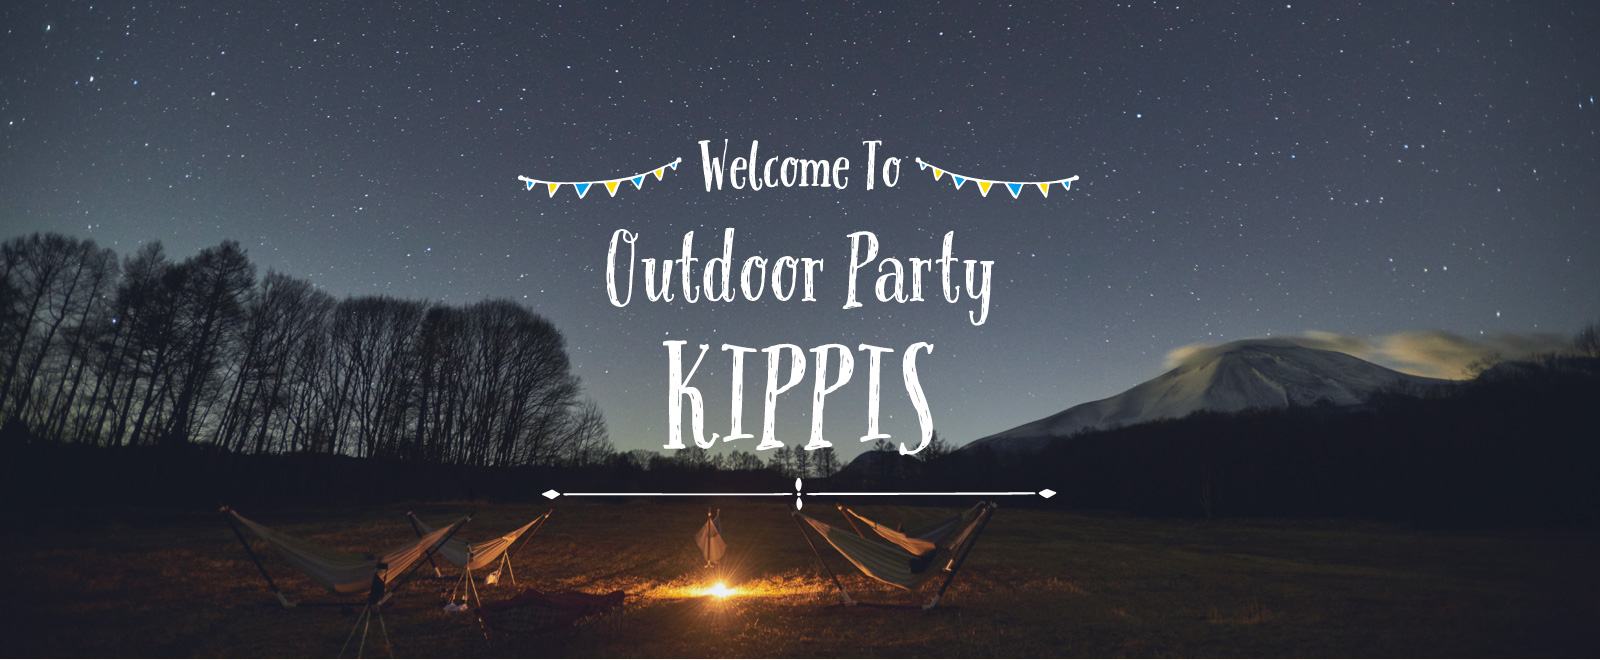 Welcome to OutdoorParty KIPPIS 星空